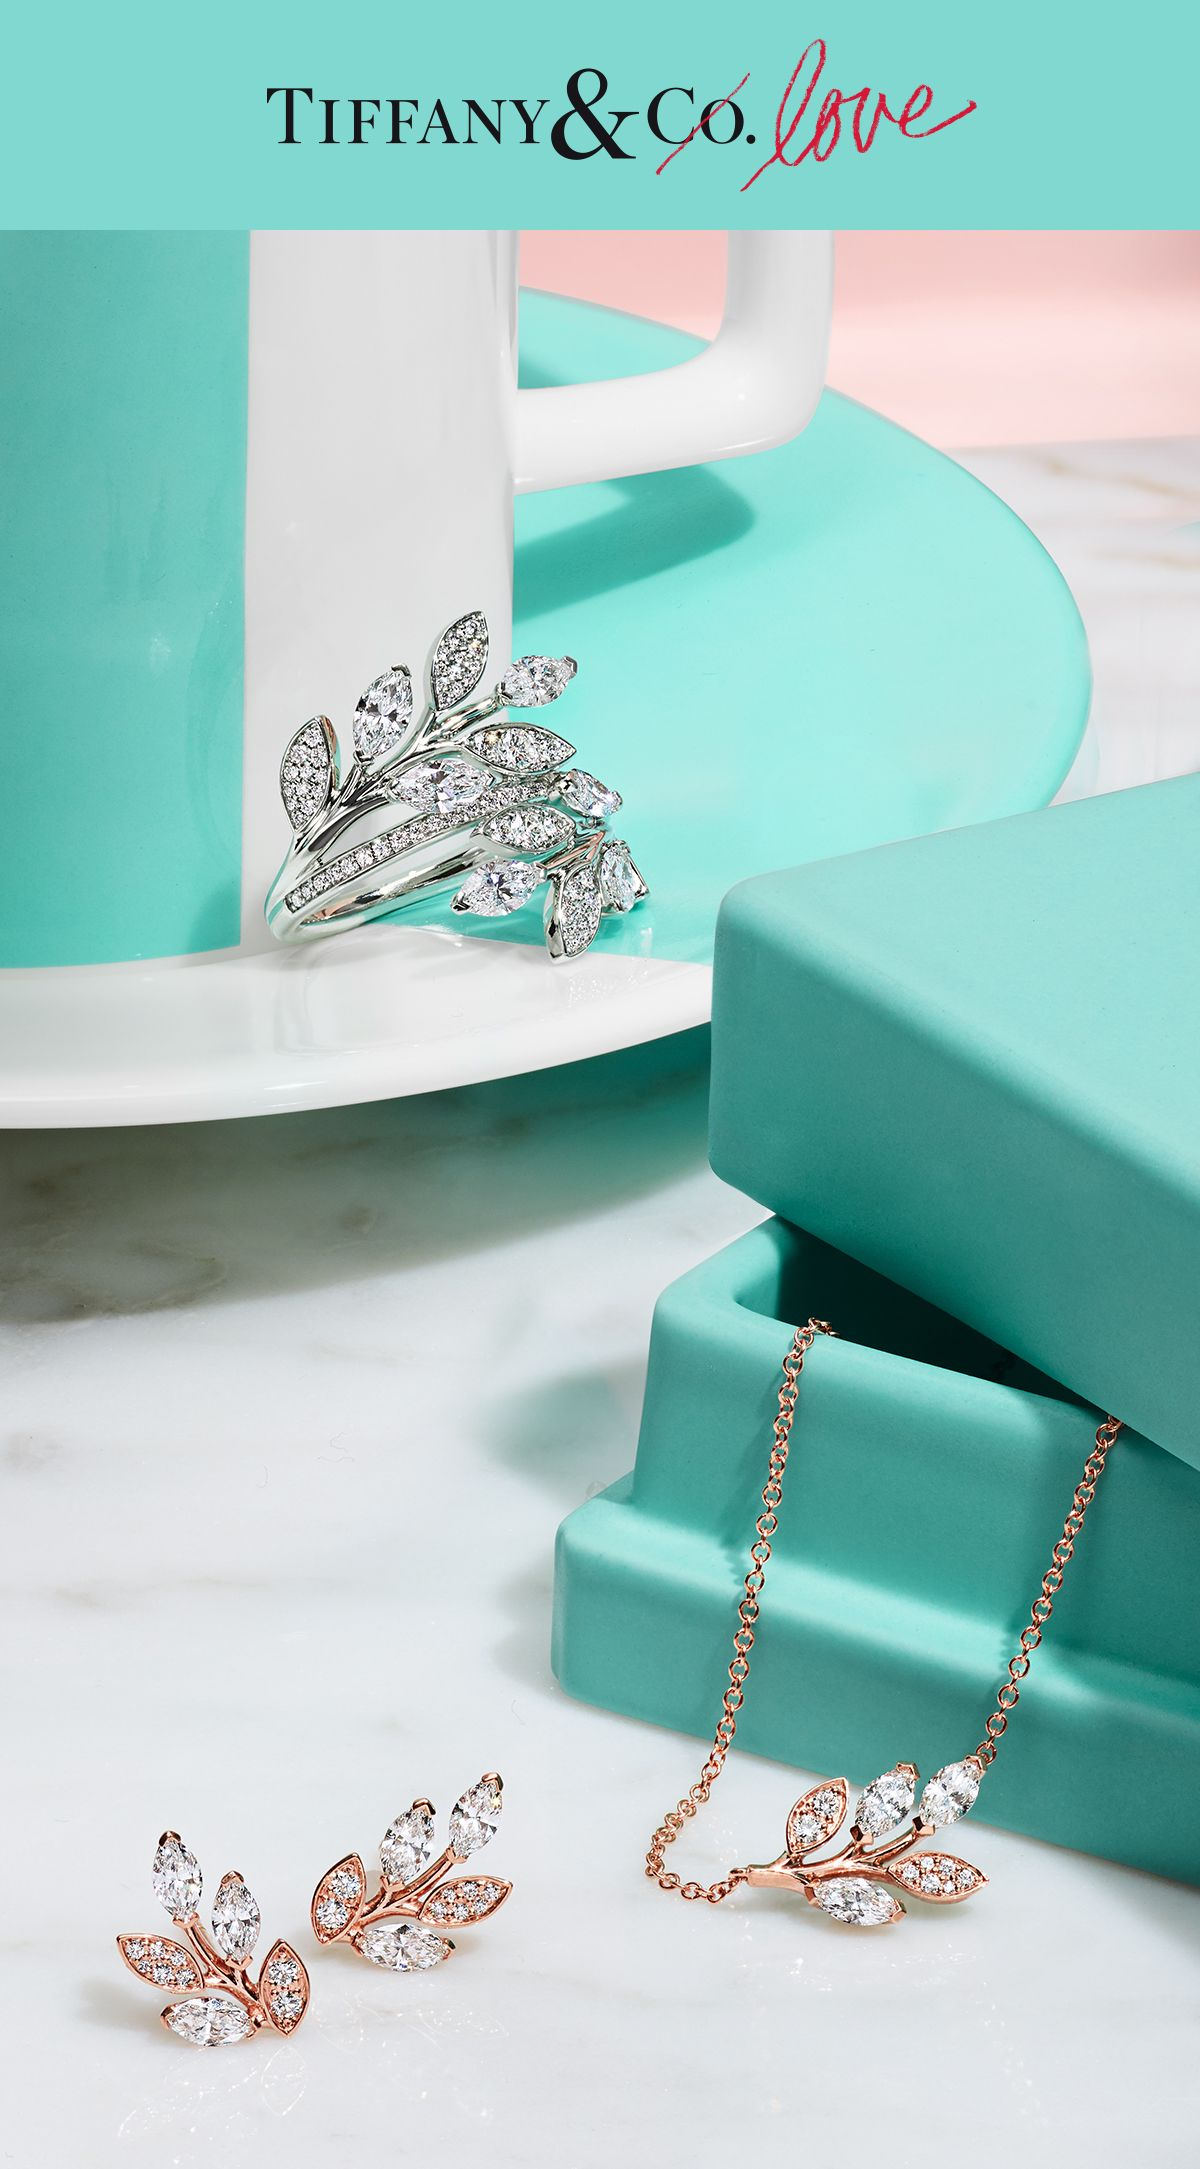 New designs from the Tiffany Victoria® vine collection are